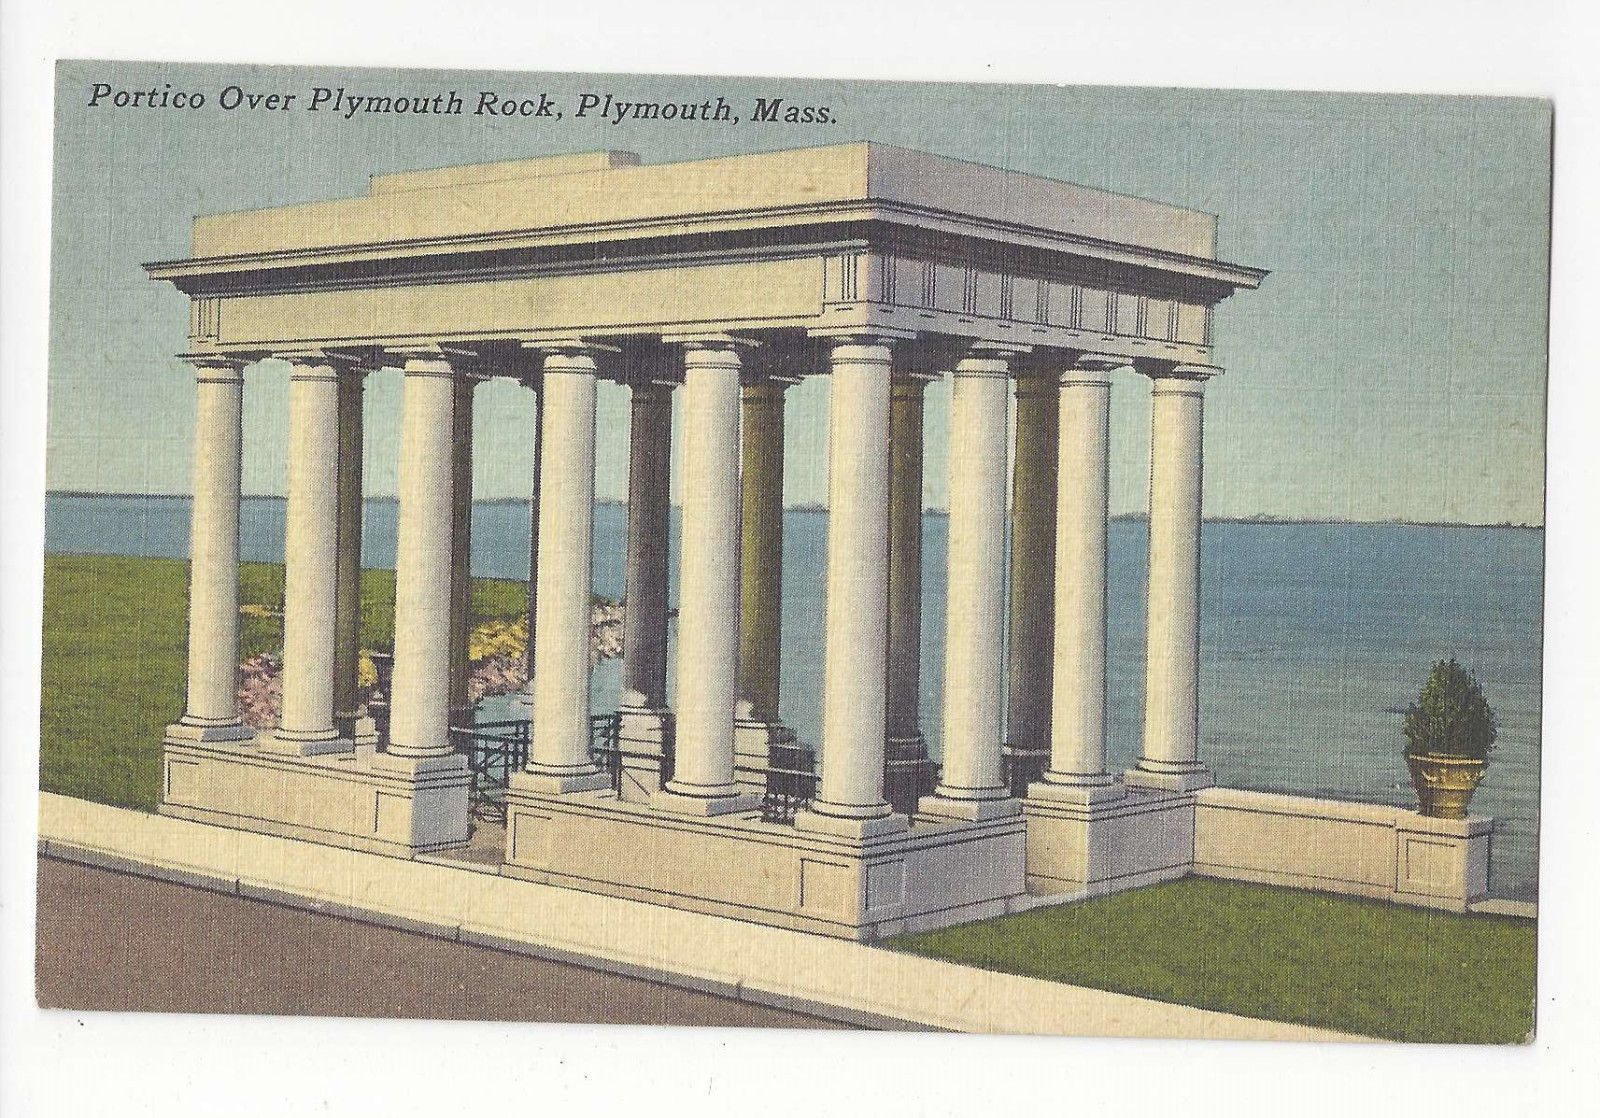 MA Plymouth Portico over Plymouth Rock Vintage 1952 Linen Postcard